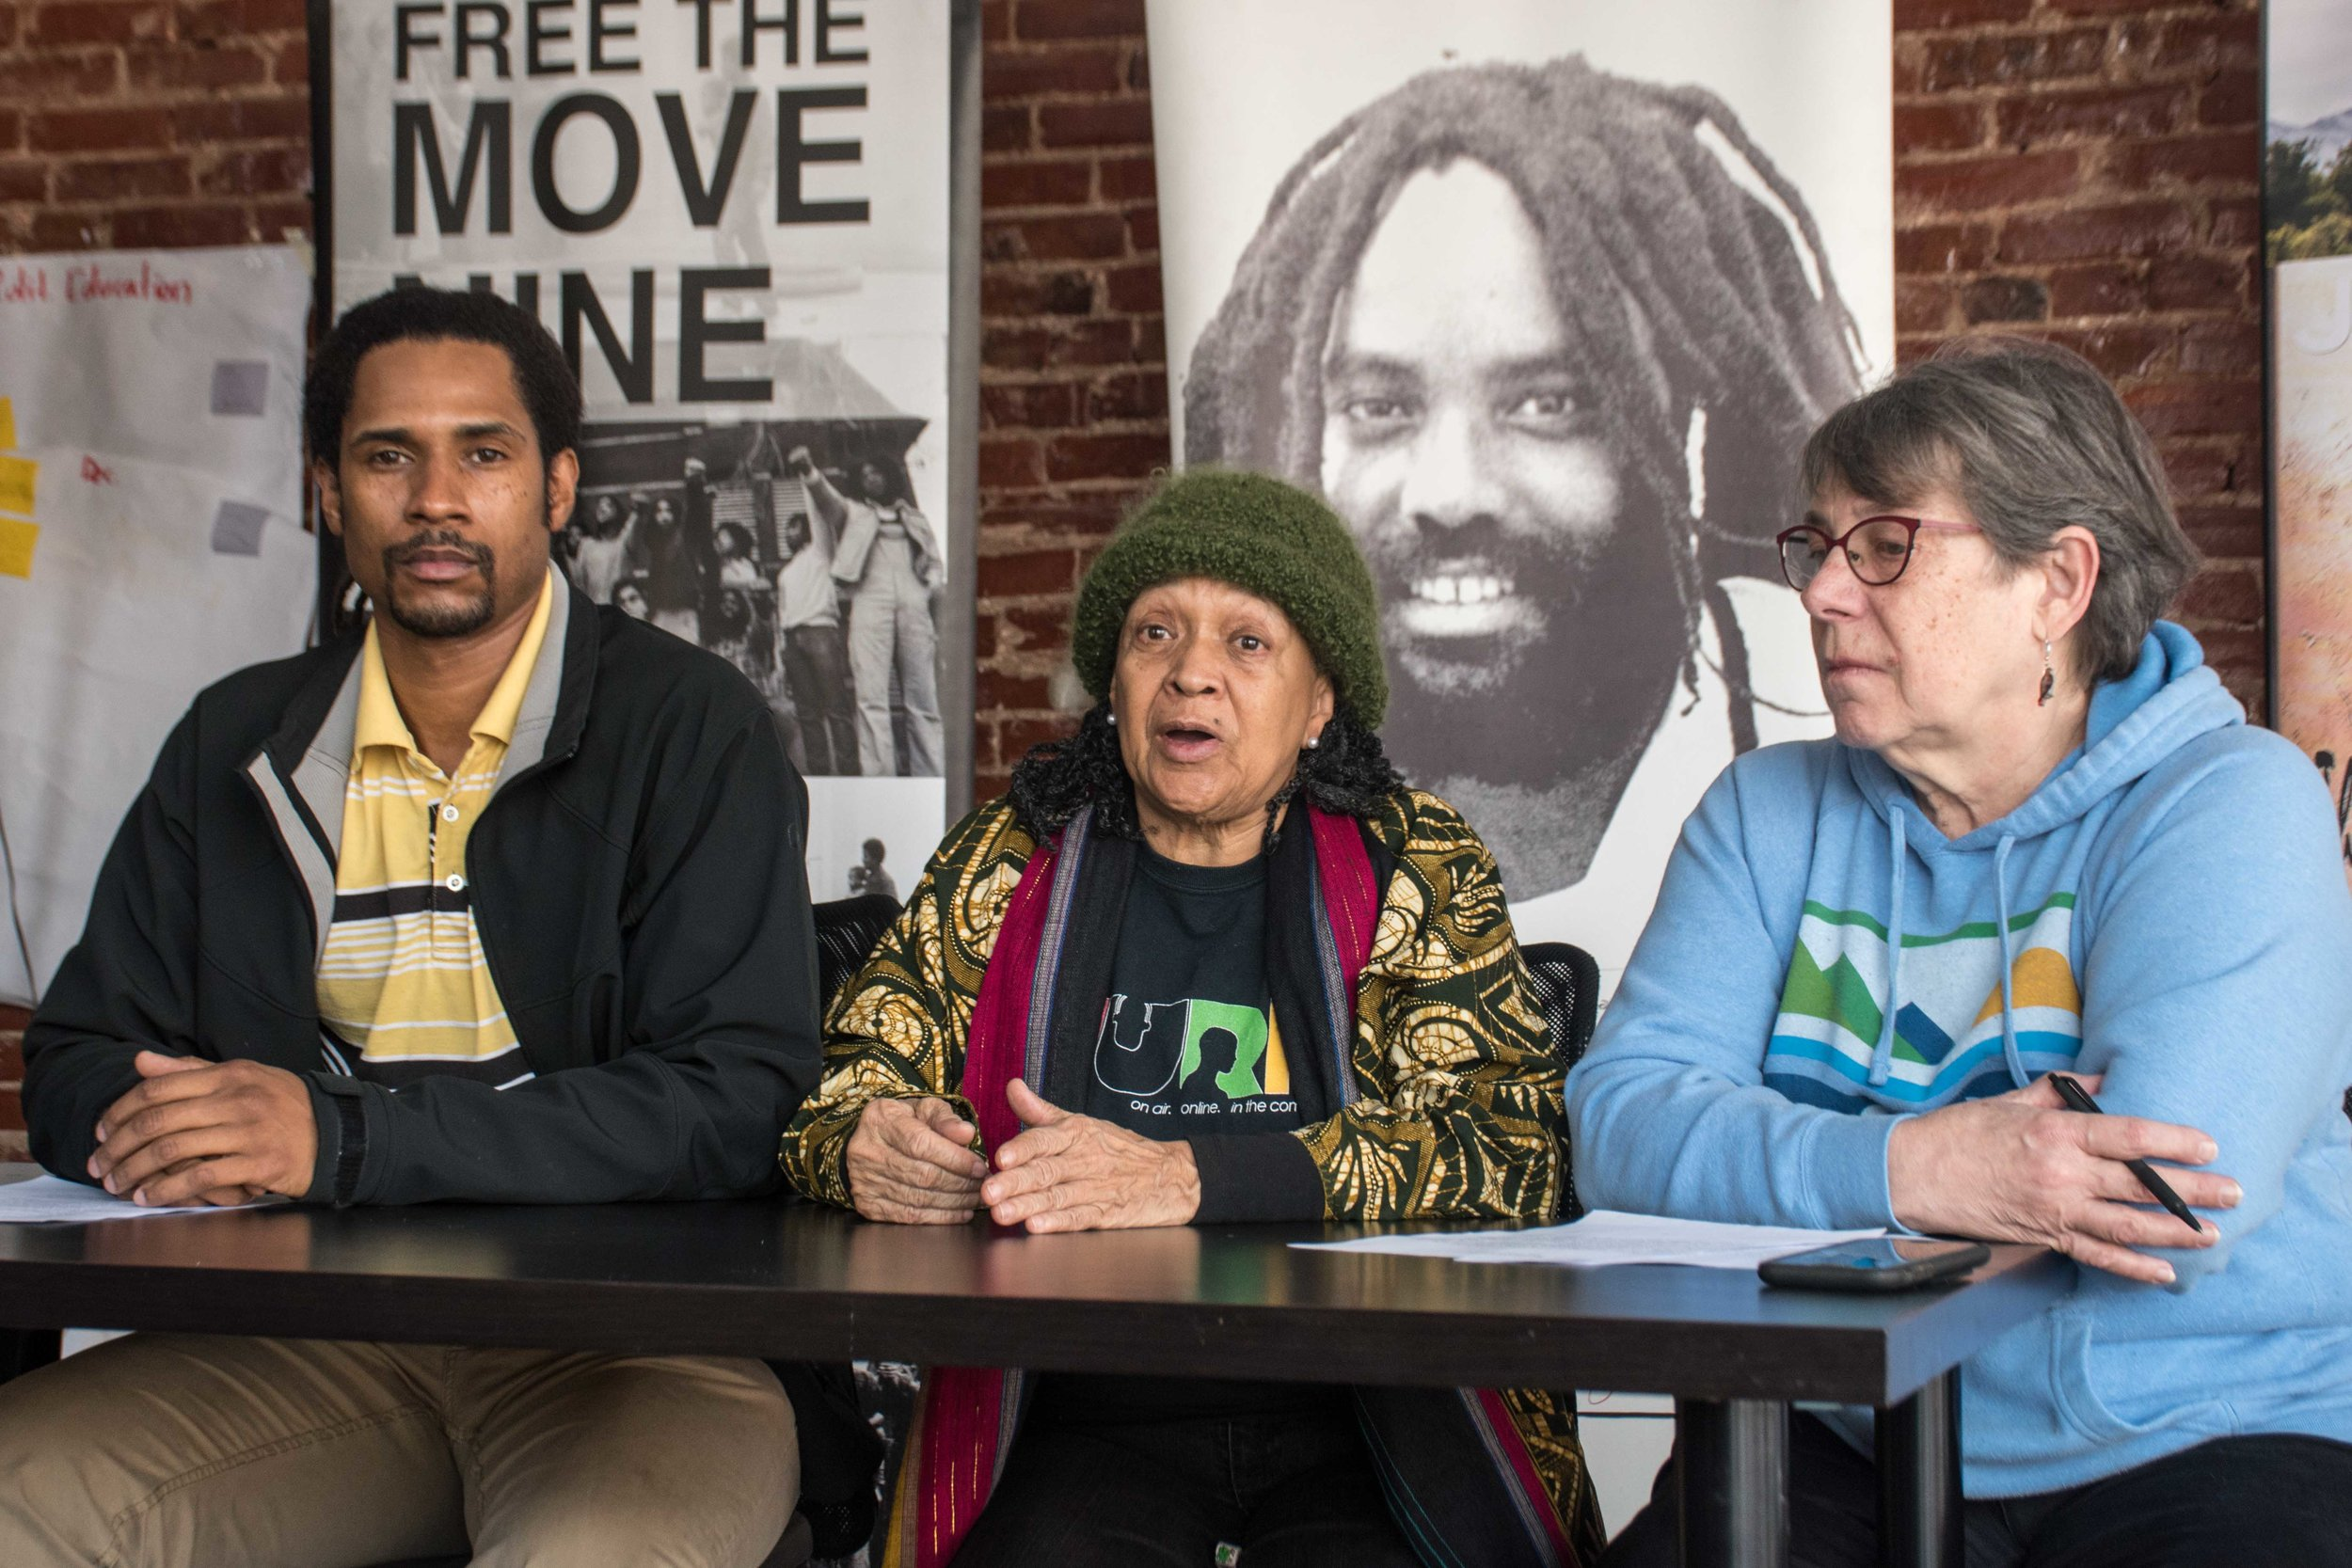 2.2.19 Philadelphia - Press Conference describes the significance of the Feb 1 dis-invitation of Philadelphia District Attorney Larry Krasner by the Rebellious Lawyering (RebLaw) conference at Yale University. Video to be posted soon.  L to R: Mike Africa Jr (MOVE Organization), Pam Africa (International Concerned Family and Friends of Mumia Abu-Jamal), Betsey Piette (Mobilization4Mumia)